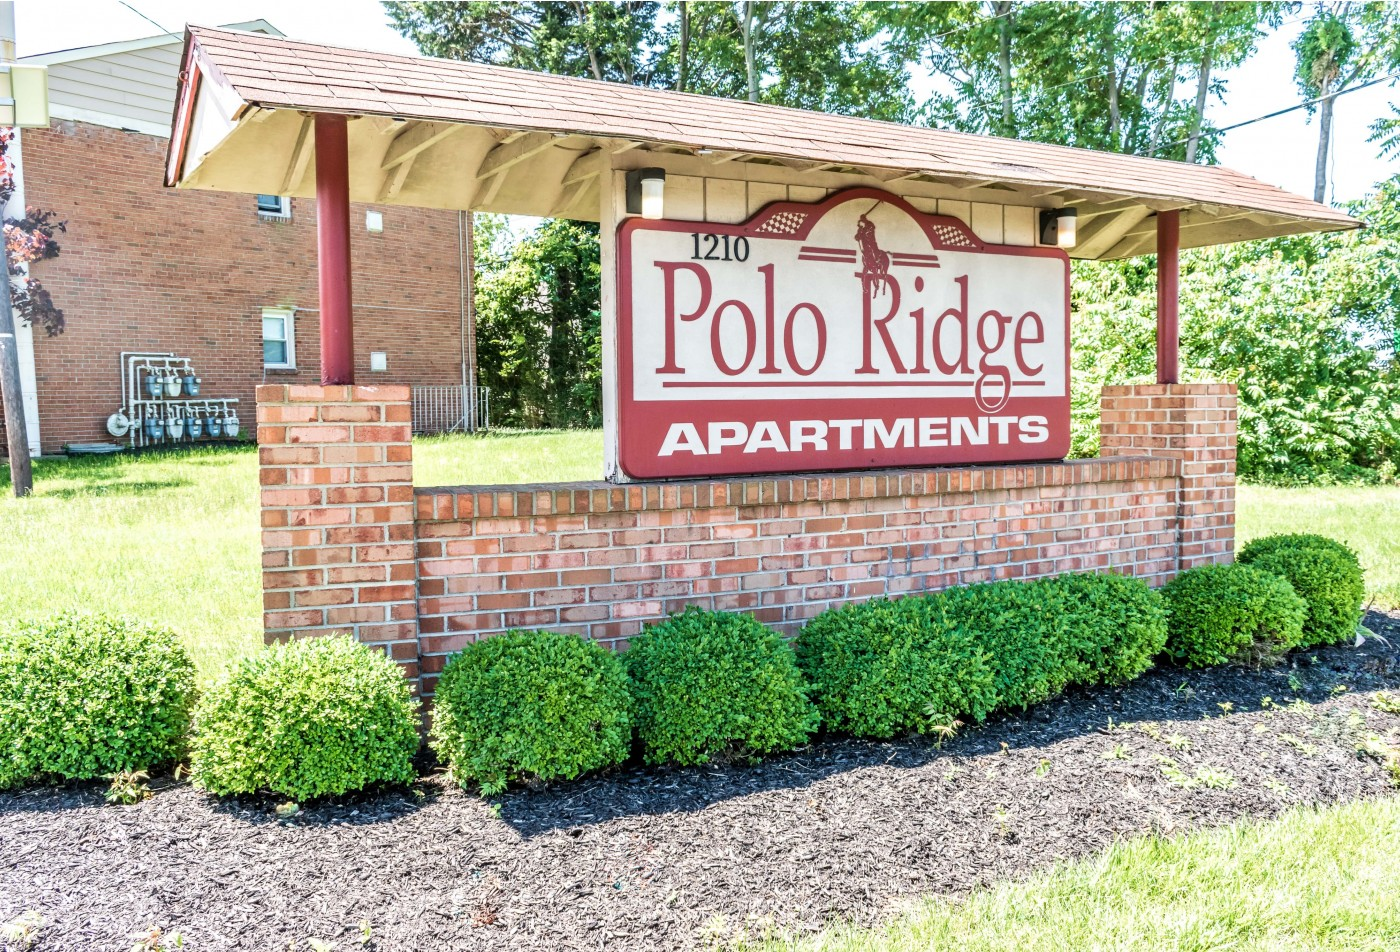 Polo Ridge Apartments